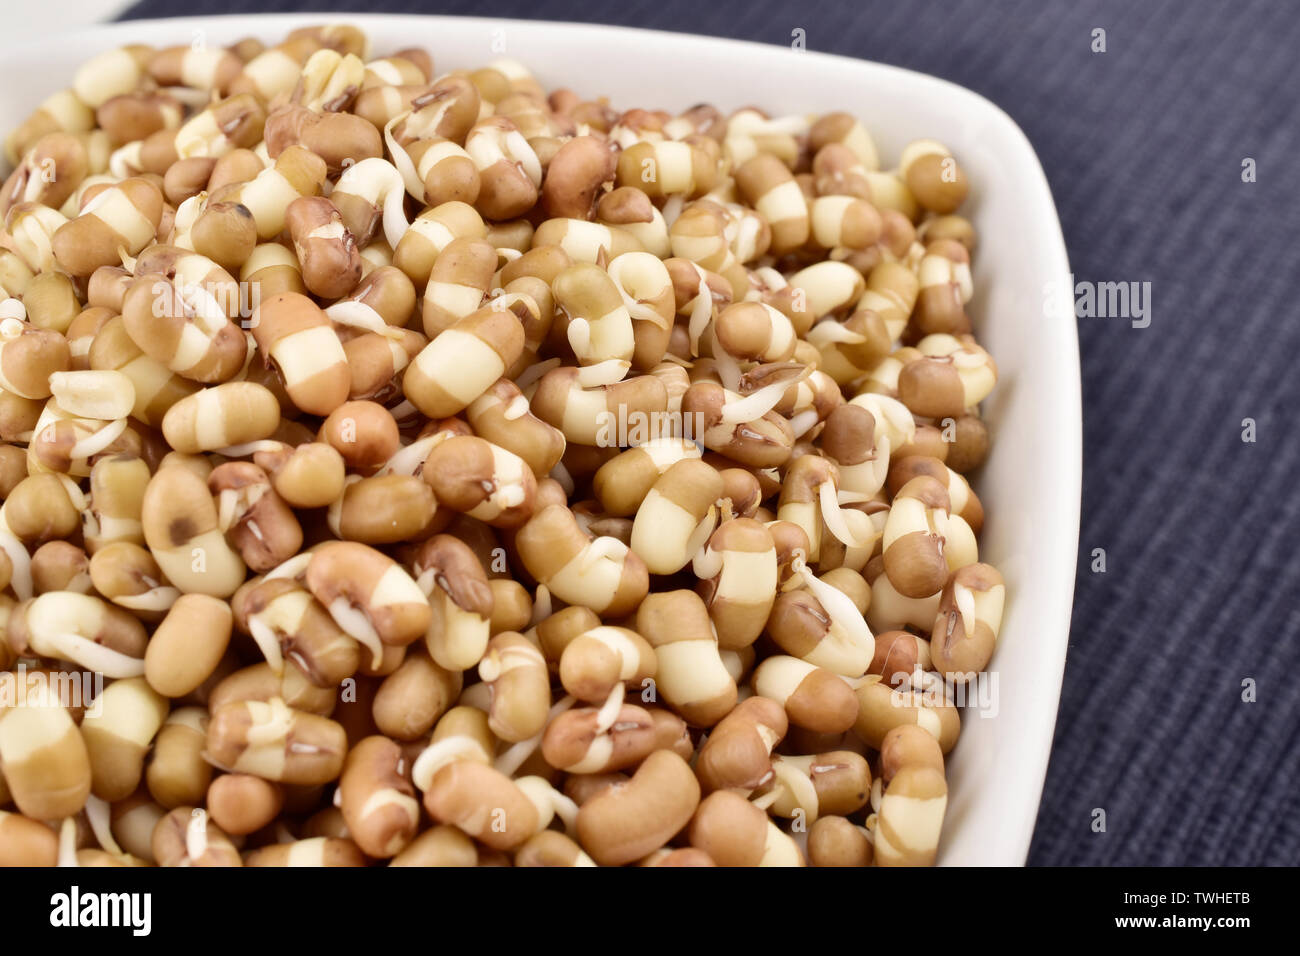 sprouts in bowl, macro image of sprouts, mung sprouts-9l - Stock Image